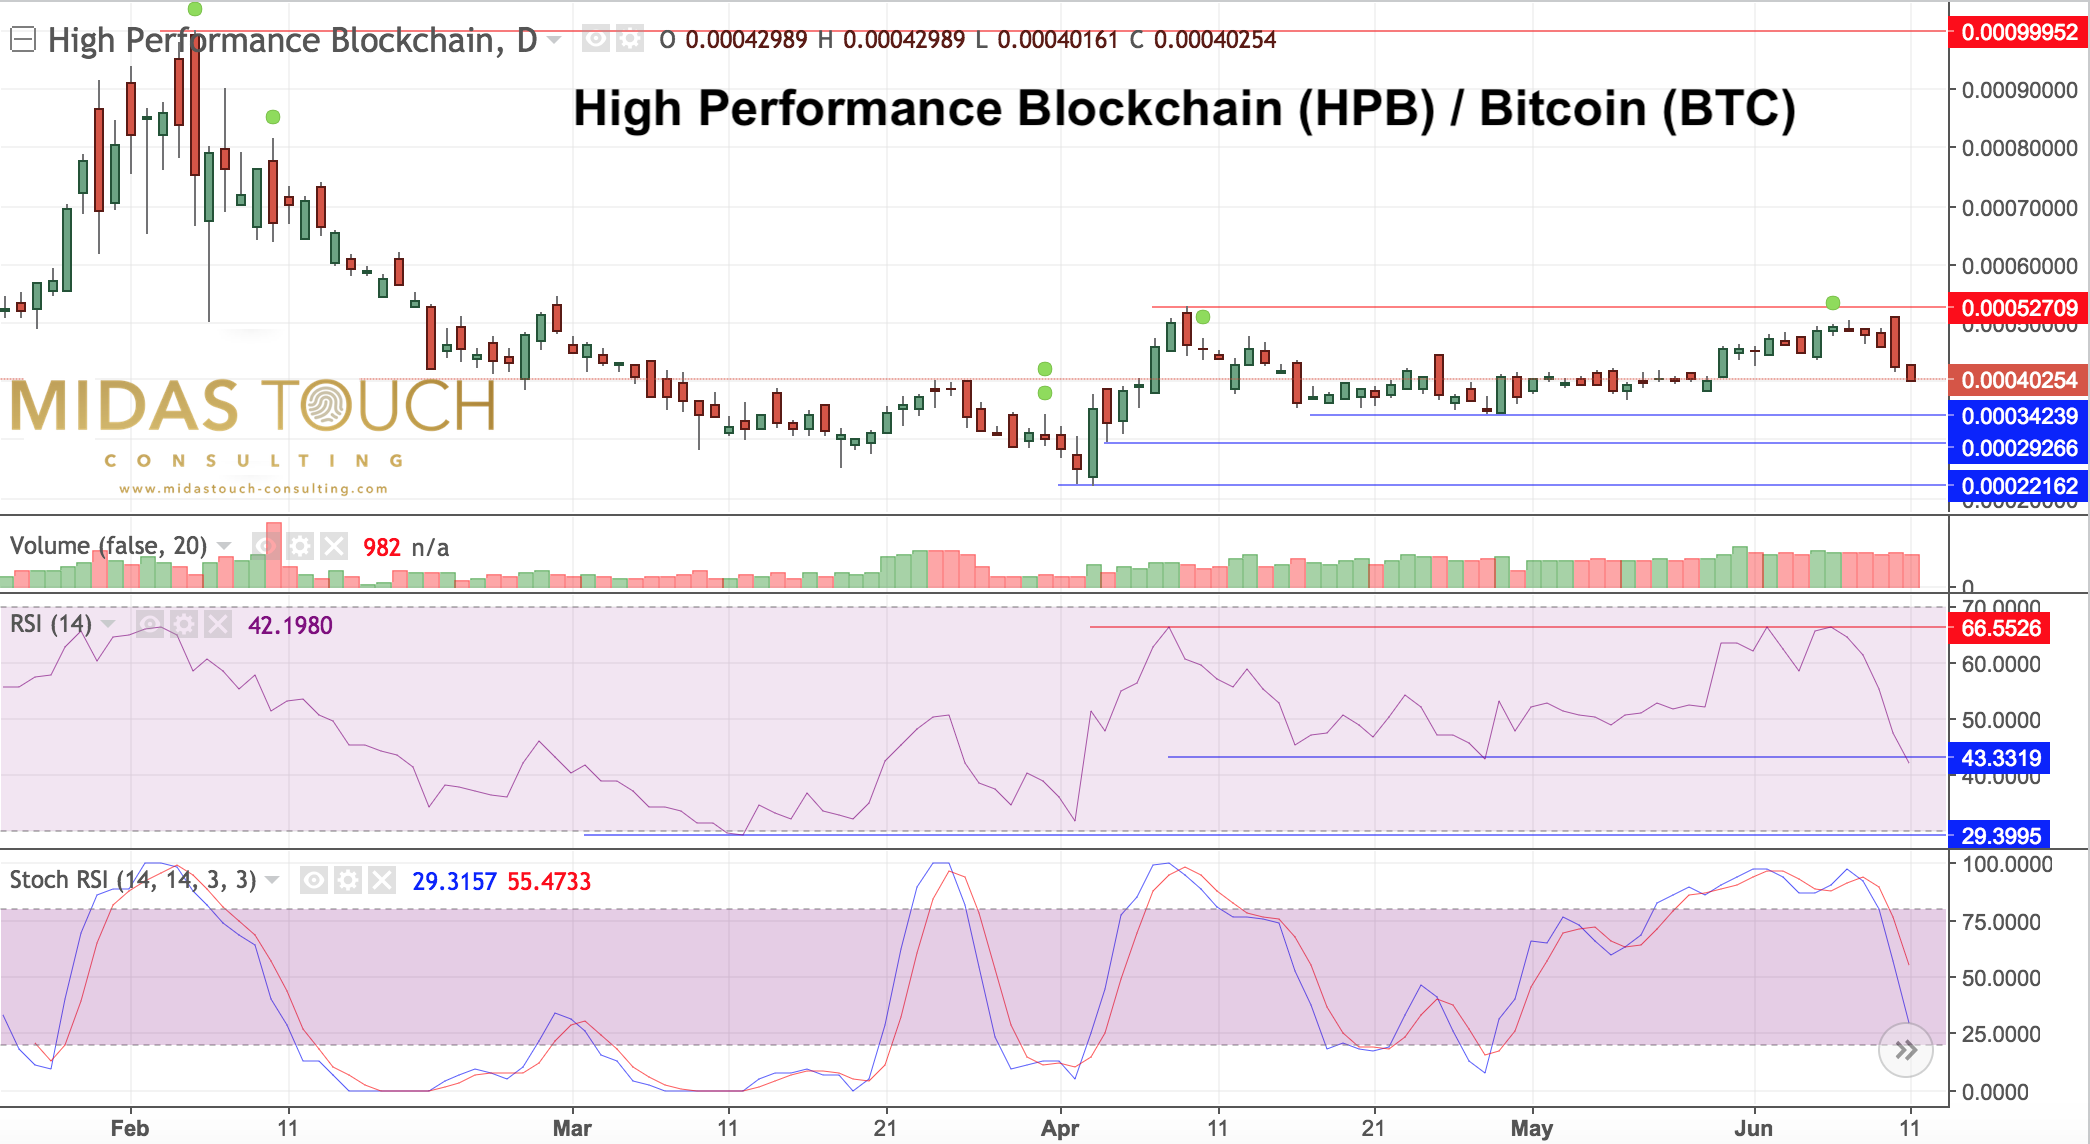 High Performance Blockchain, daily chart as of June 11th 2018.